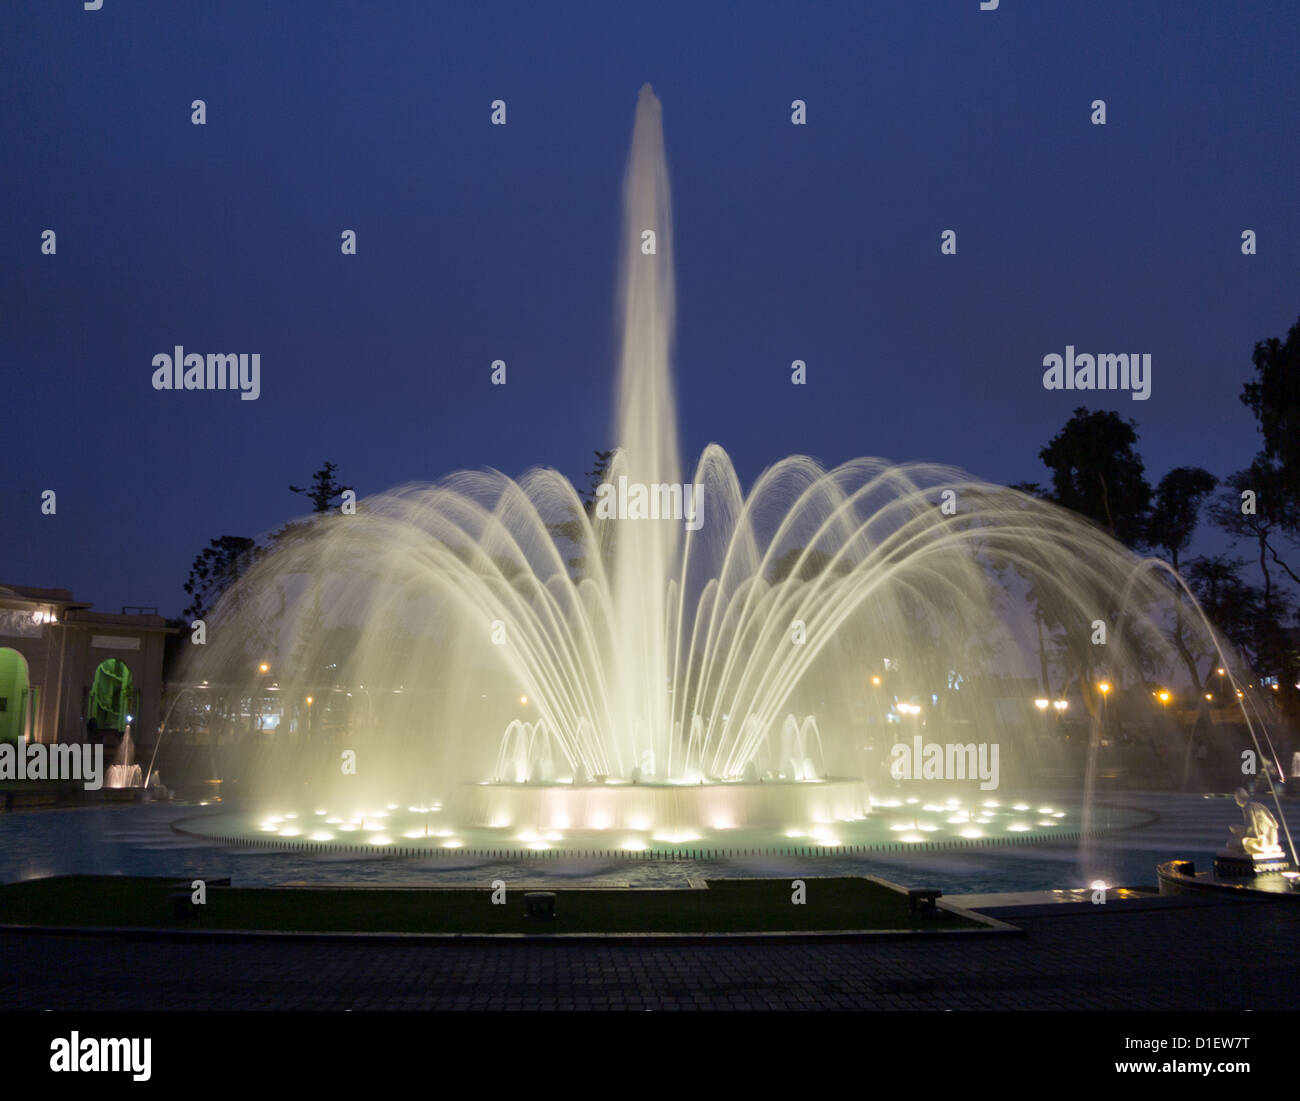 Water fountains lima - Illuminated Fountains At Dusk In Magical Water Circuit In Reserve Park Lima Peru World Record For Largest Fountains